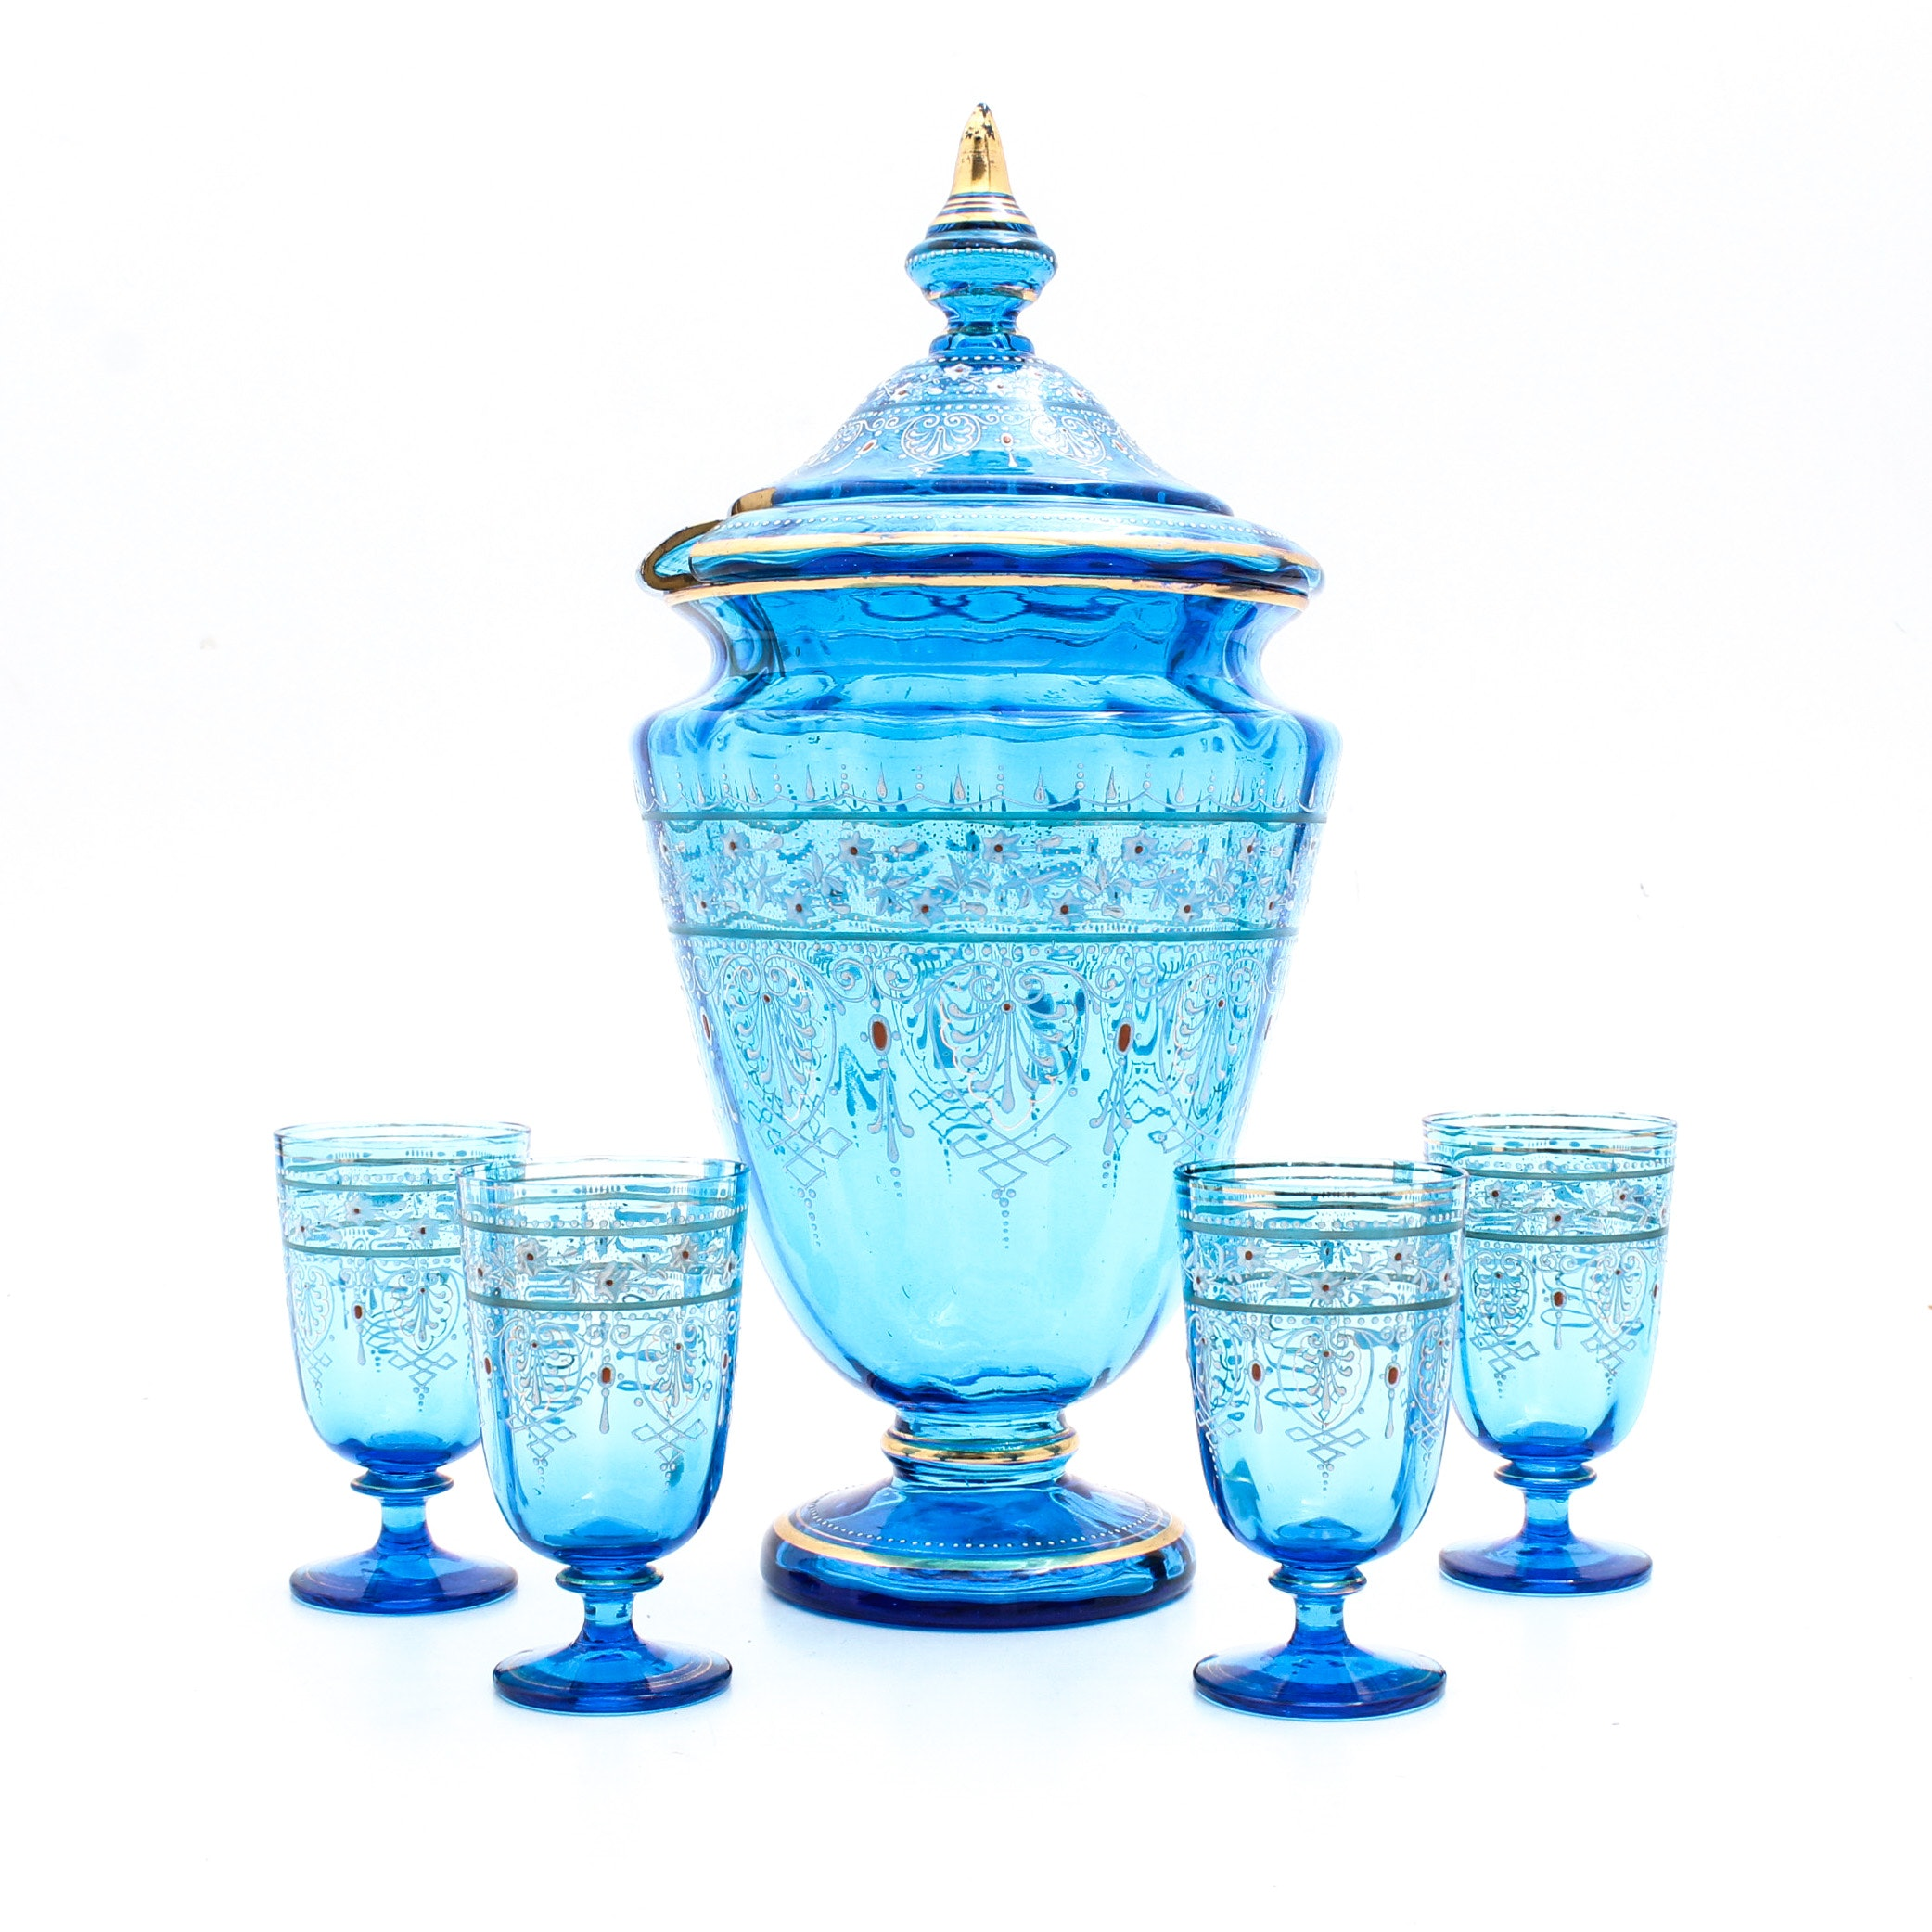 Blue Glass Punchbowl and Glasses with Enamel Decoration